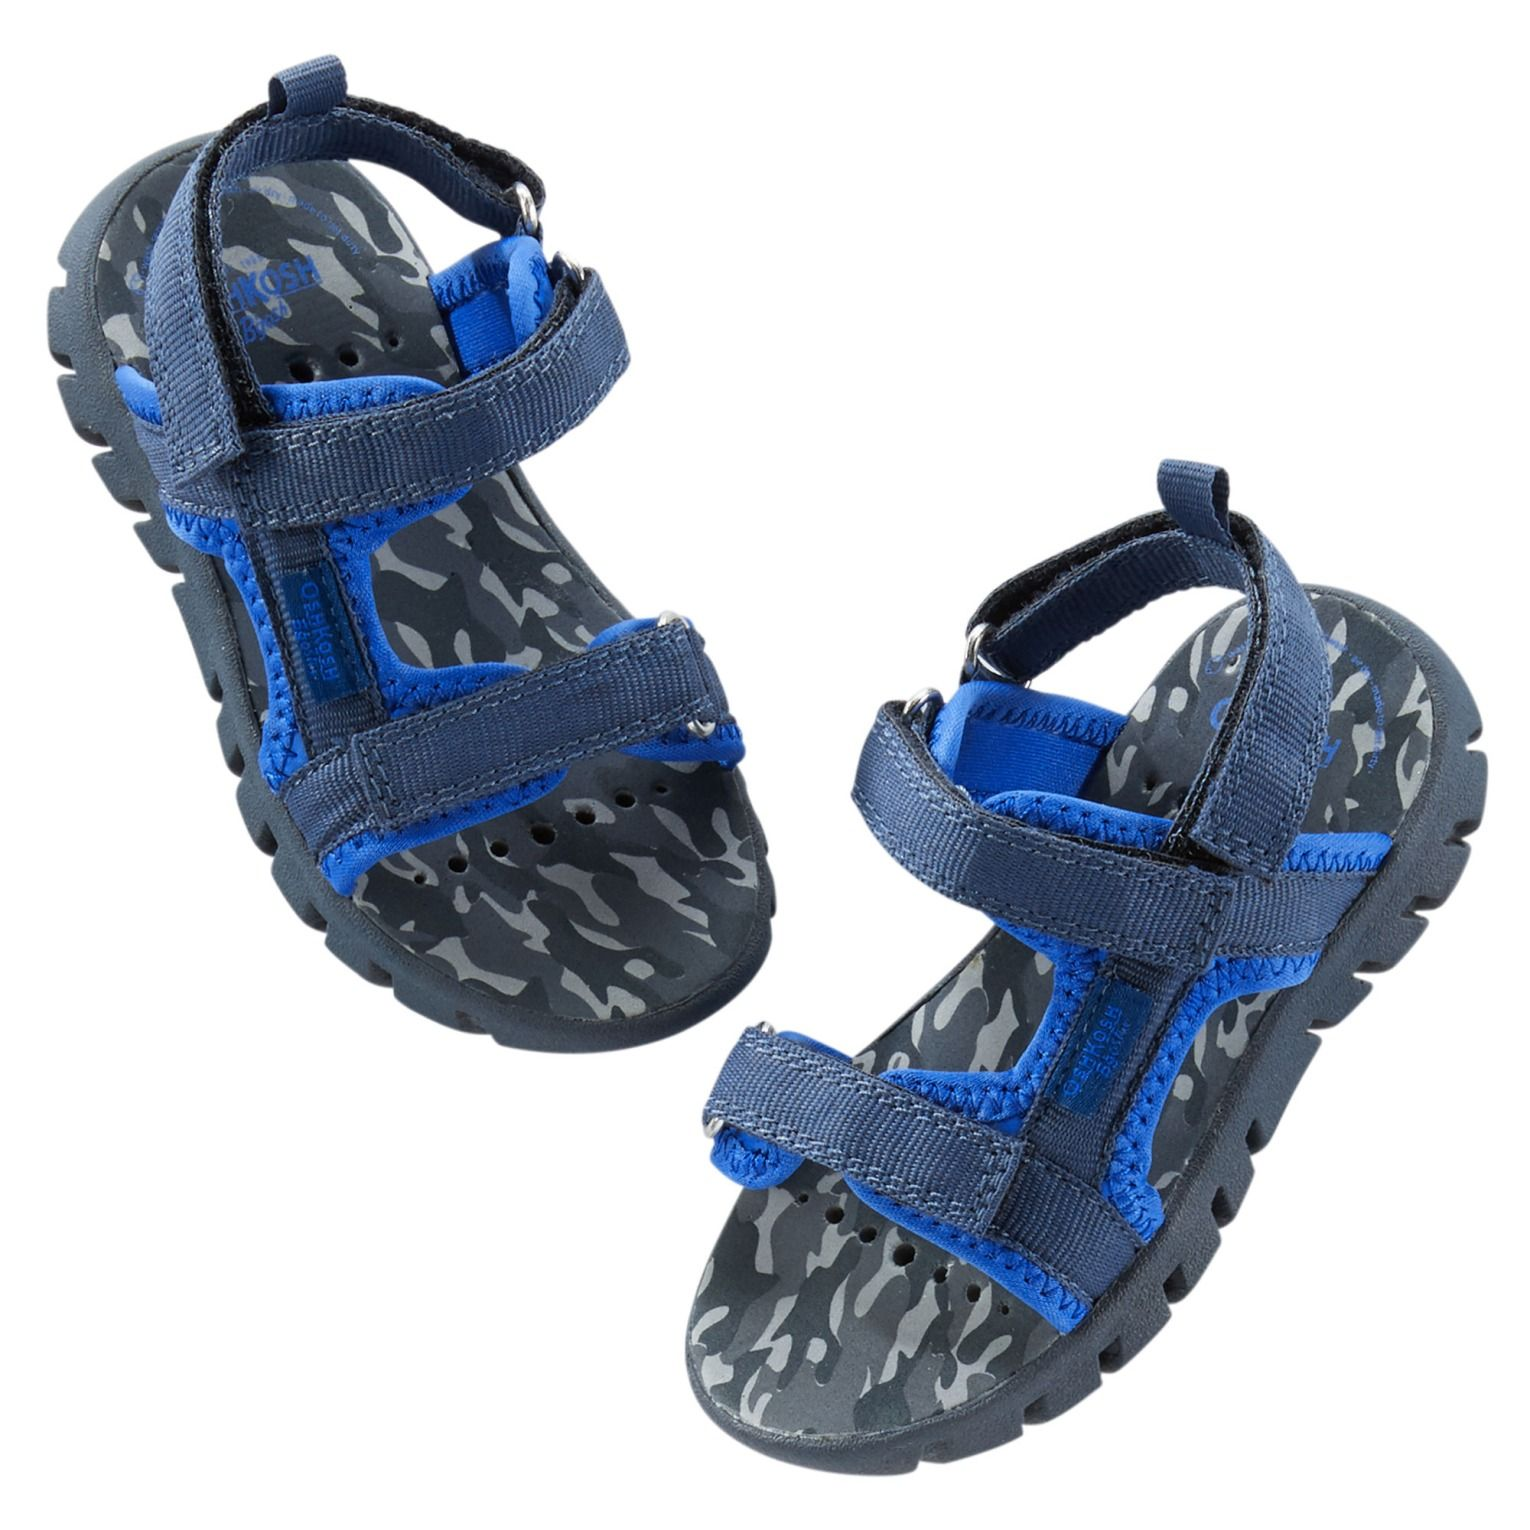 OshKosh Sporty Sandals now available at oshkosh shoes